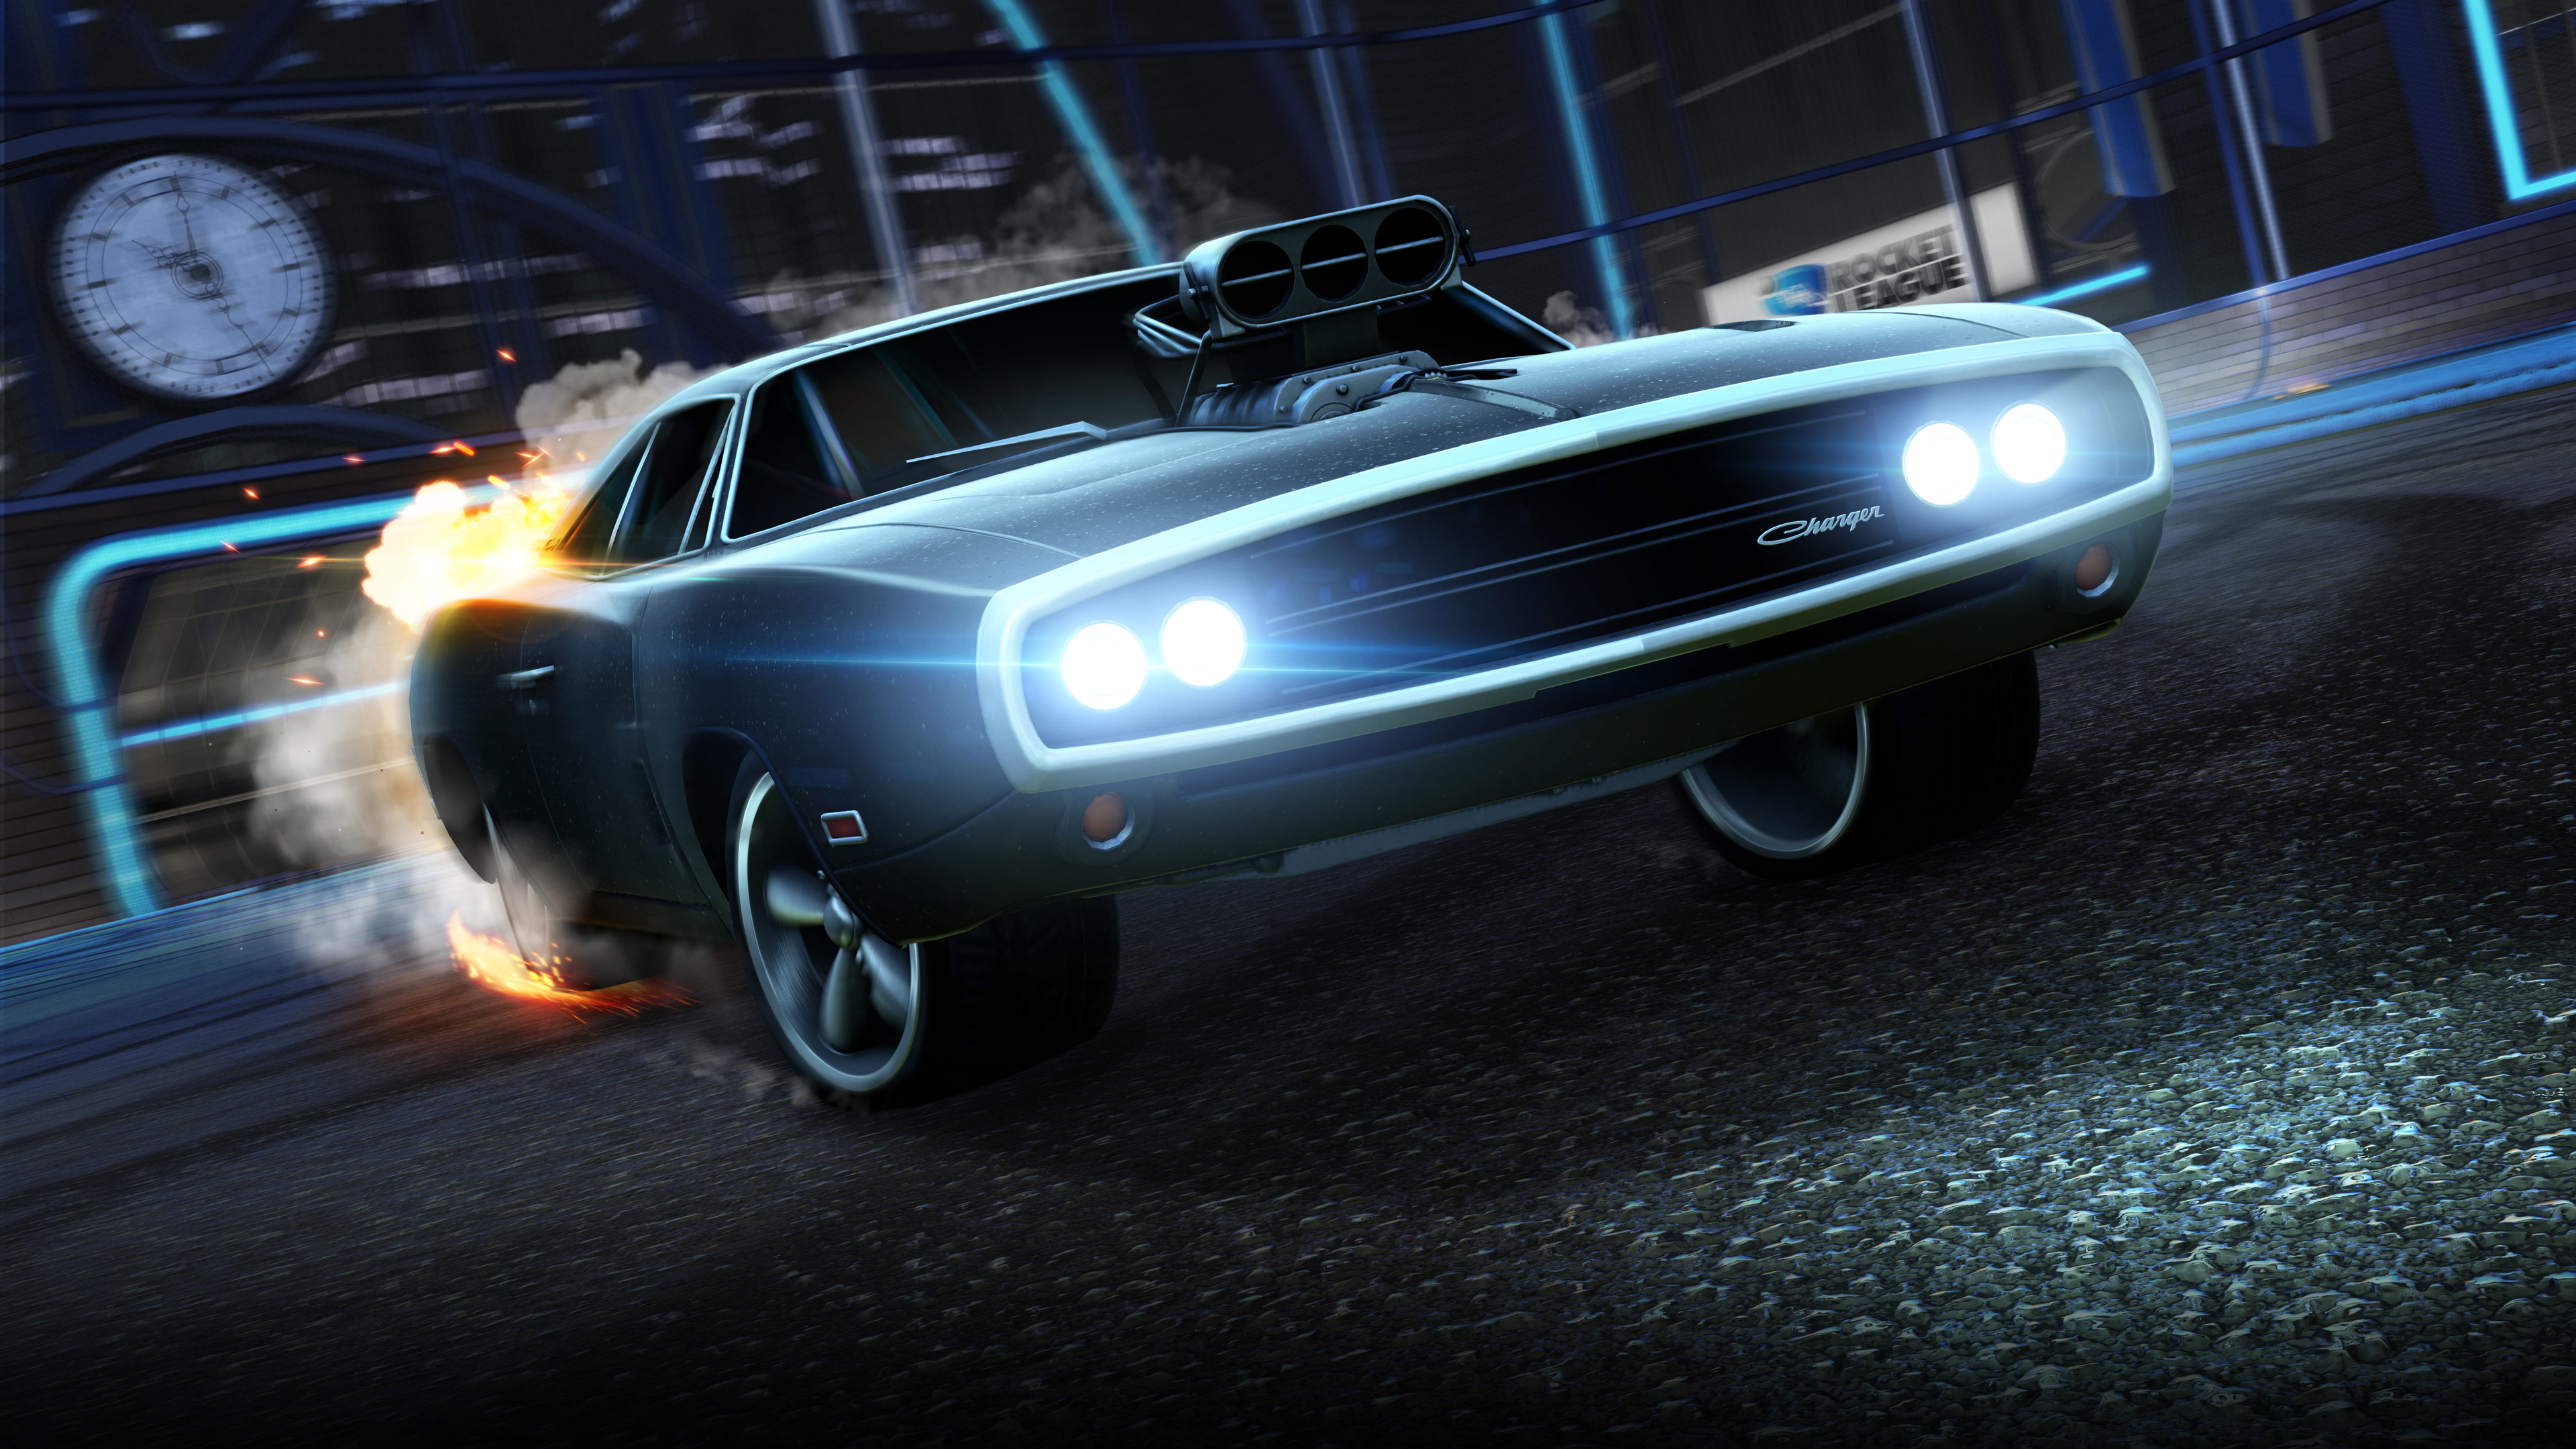 Dodge Charger In Rocket League 4k Wallpapers Hd Wallpapers